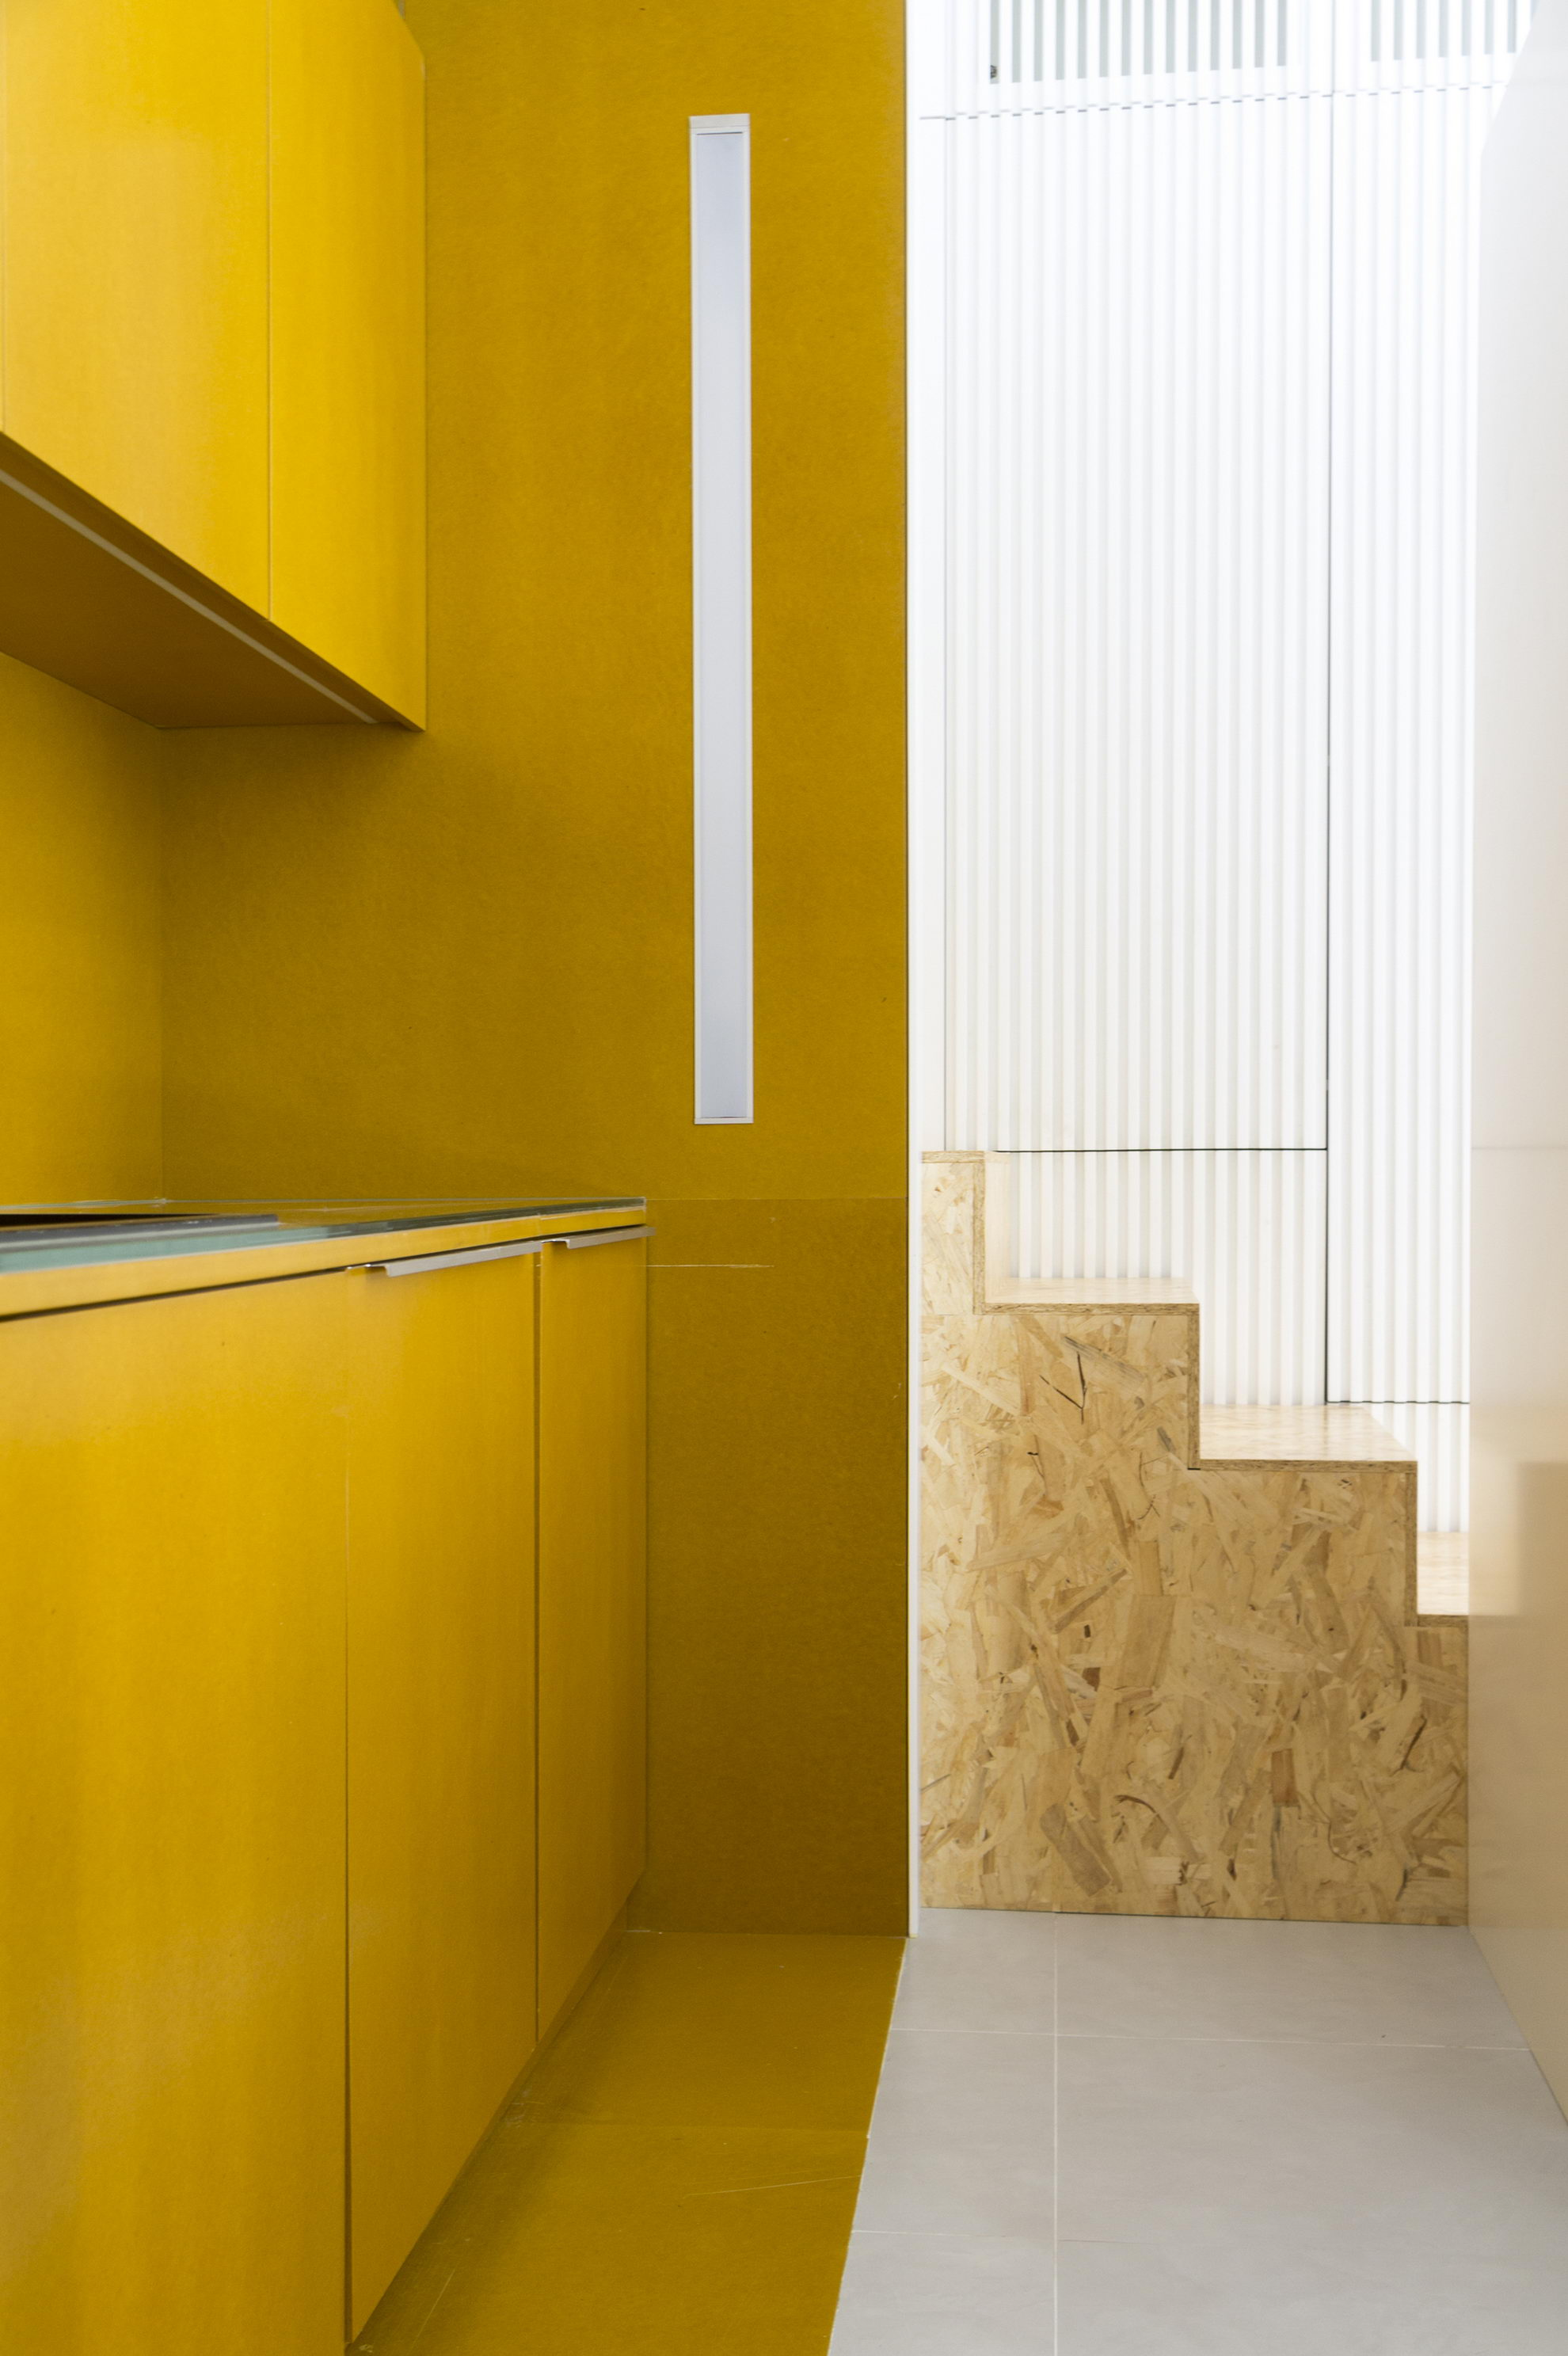 Take a Look at the 2018 Color Trends and Get Ready For a Major Change 2018 color trends Take a Look at the 2018 Color Trends and Get Ready For a Major Change Take a Look at the 2018 Color Trends and Get Ready For a Major Change Bright Yellows